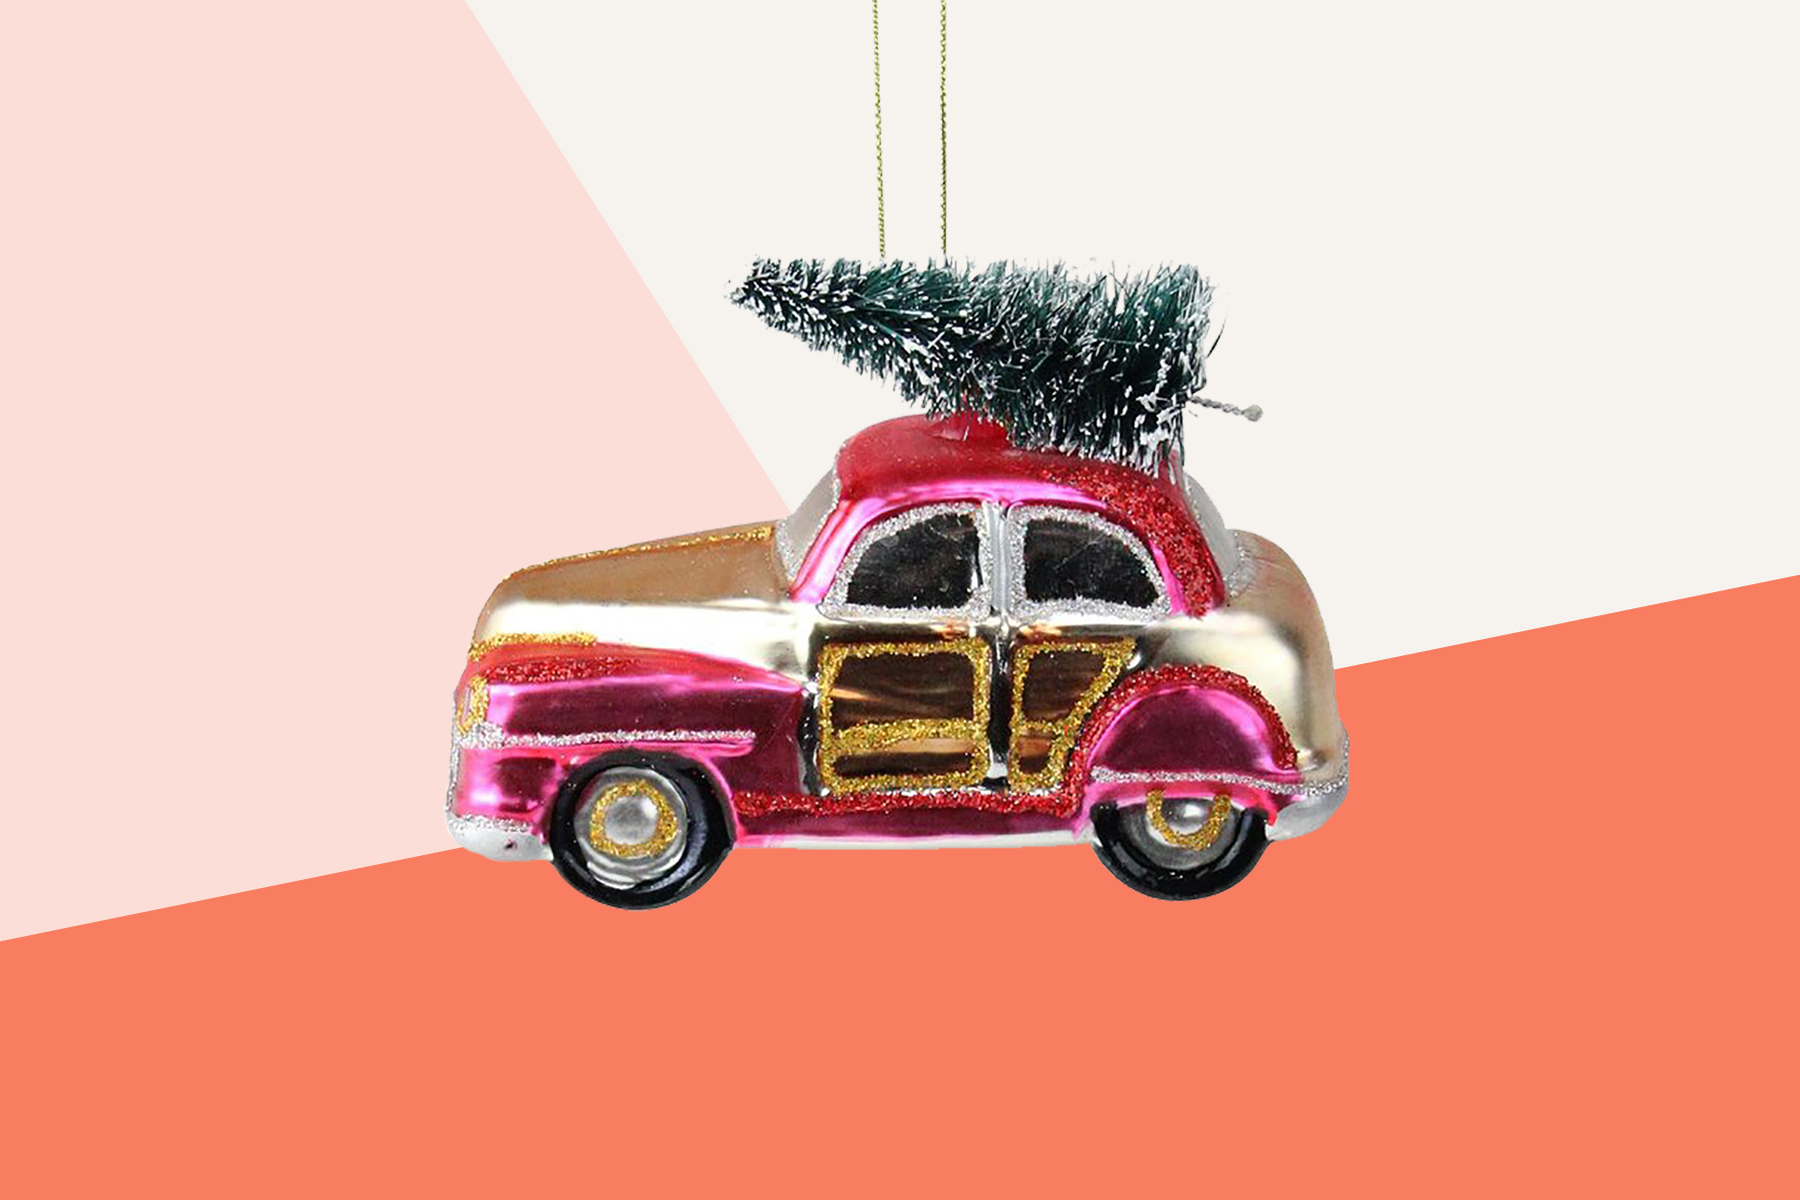 11 Vintage-Inspired Christmas Ornaments We're Totally Obsessed With